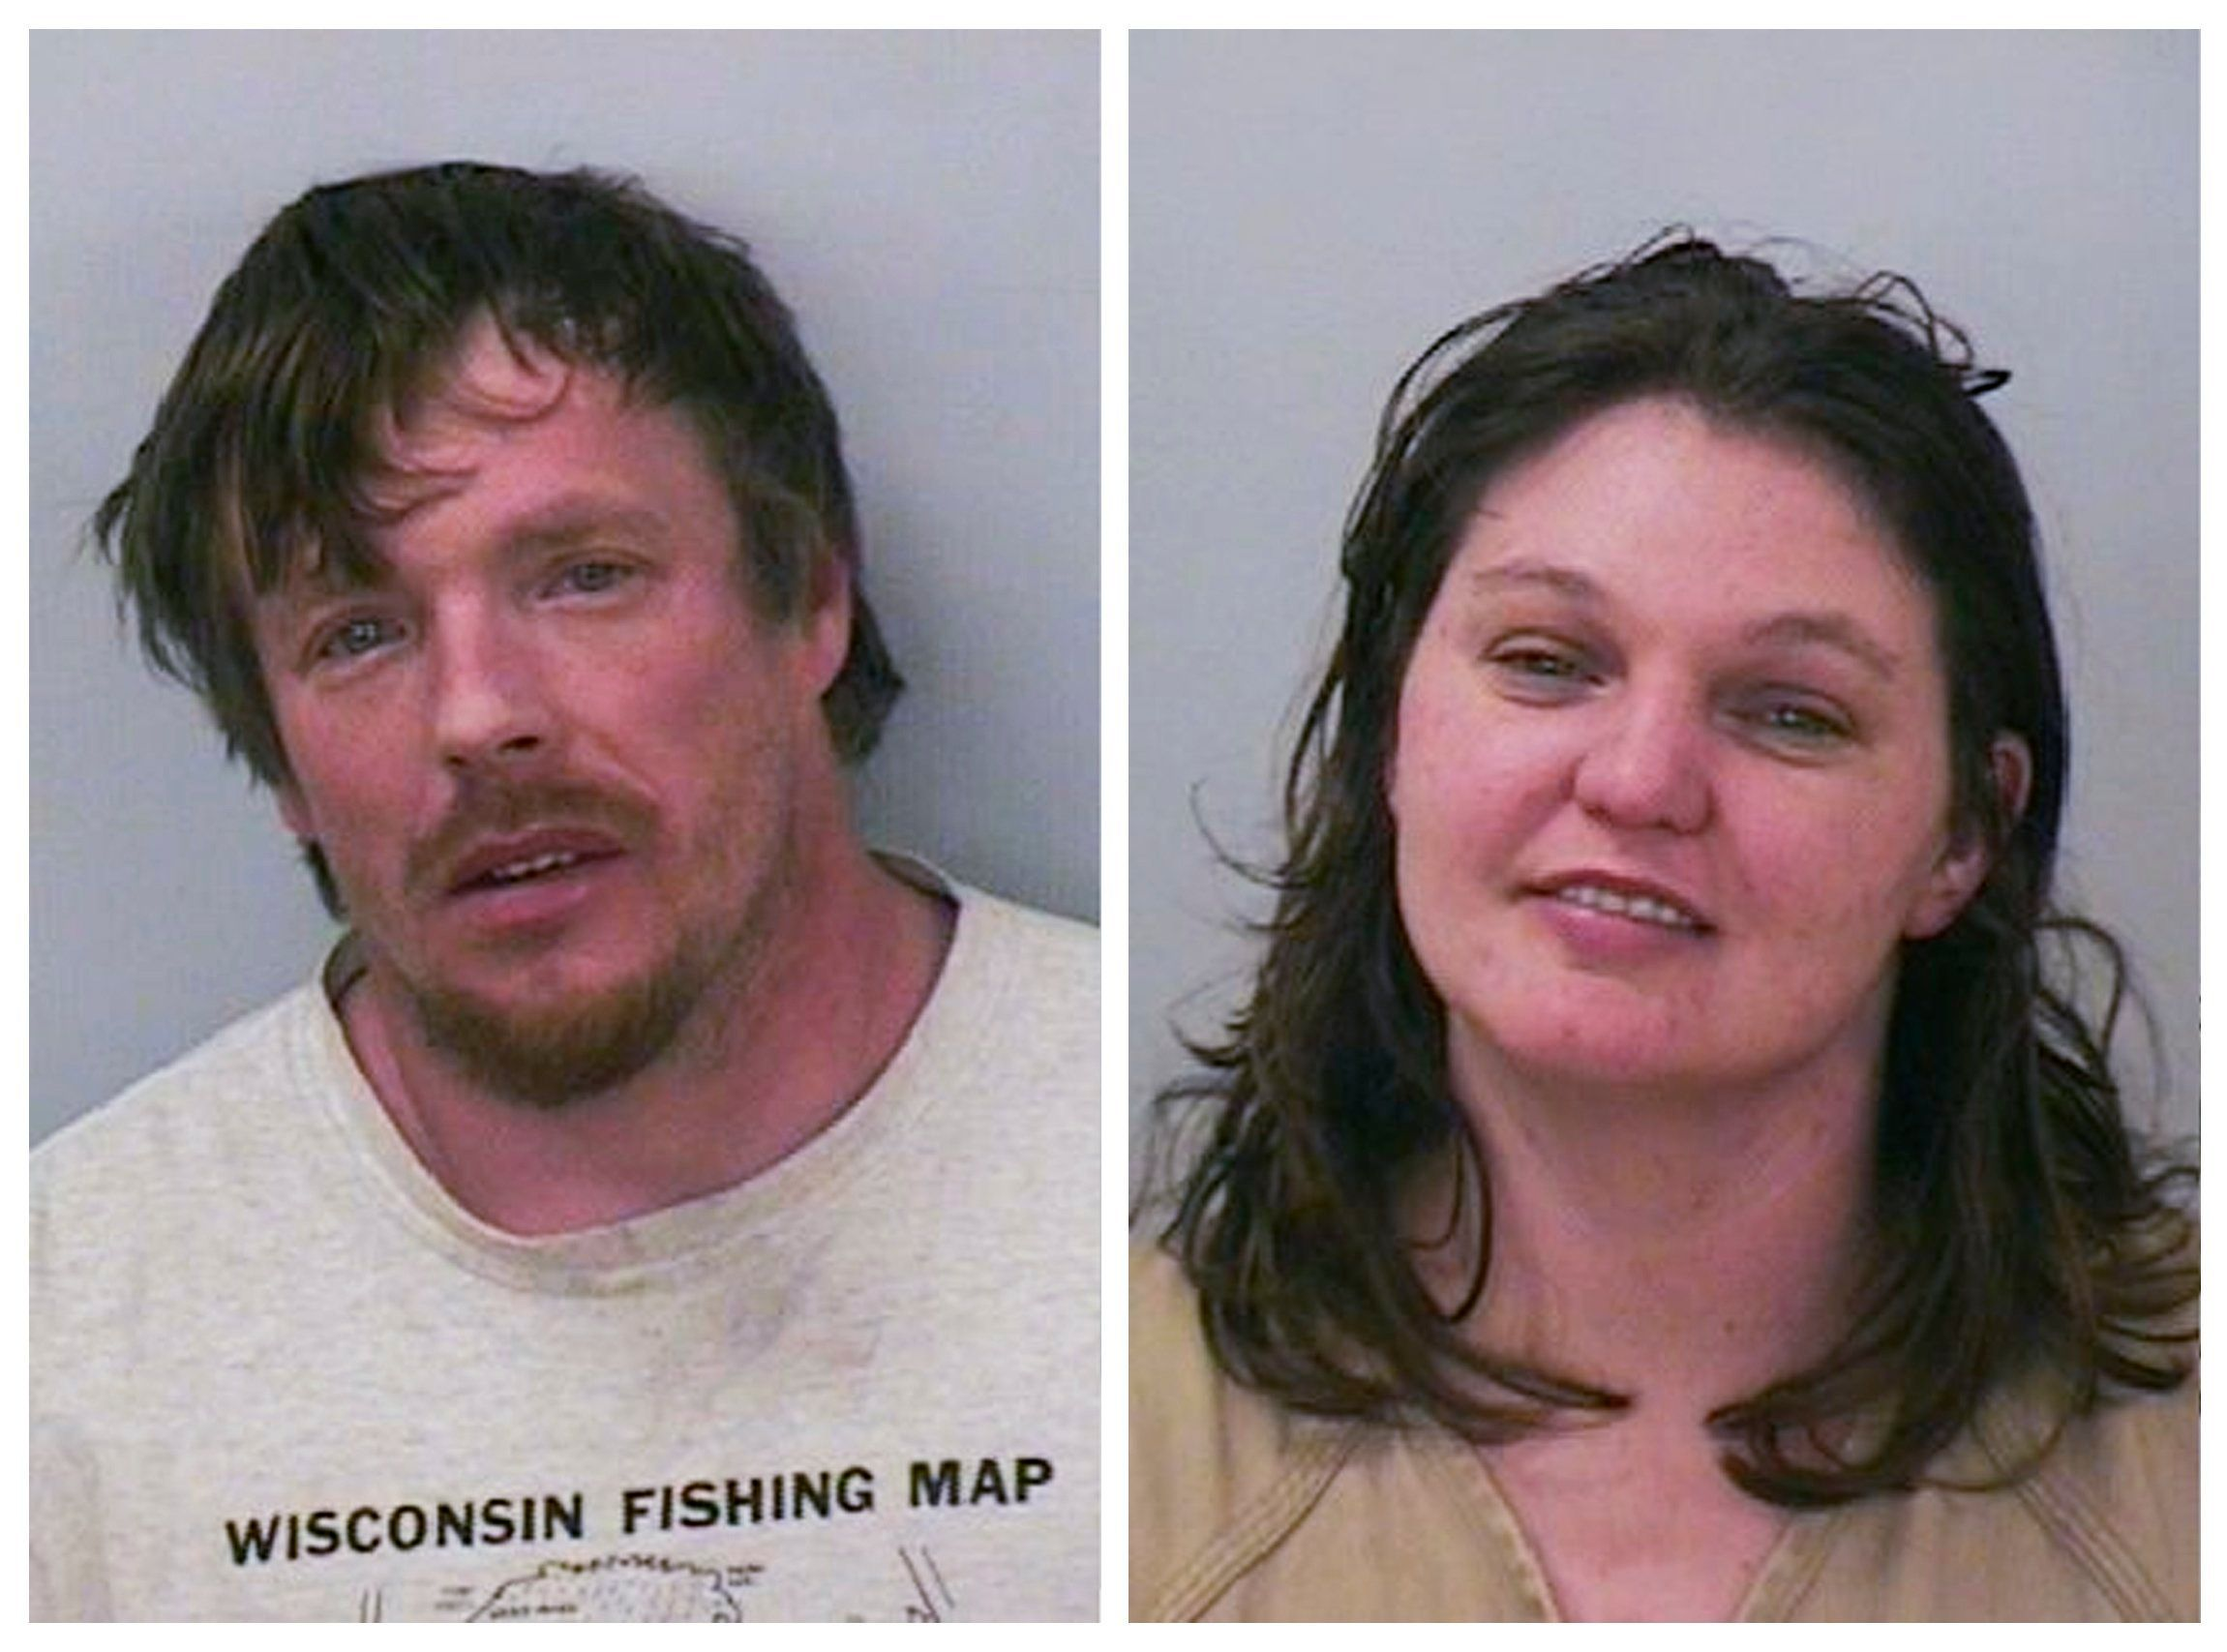 A combination photo shows Jason Robert Roth (L) and Amanda Rose Eggert in these January 31, 2016 booking photos in Polk County, Wisconsin Sheriff's Department, released on February 8, 2016. REUTERS/Polk County Sheriff's Department/Handout via Reuters